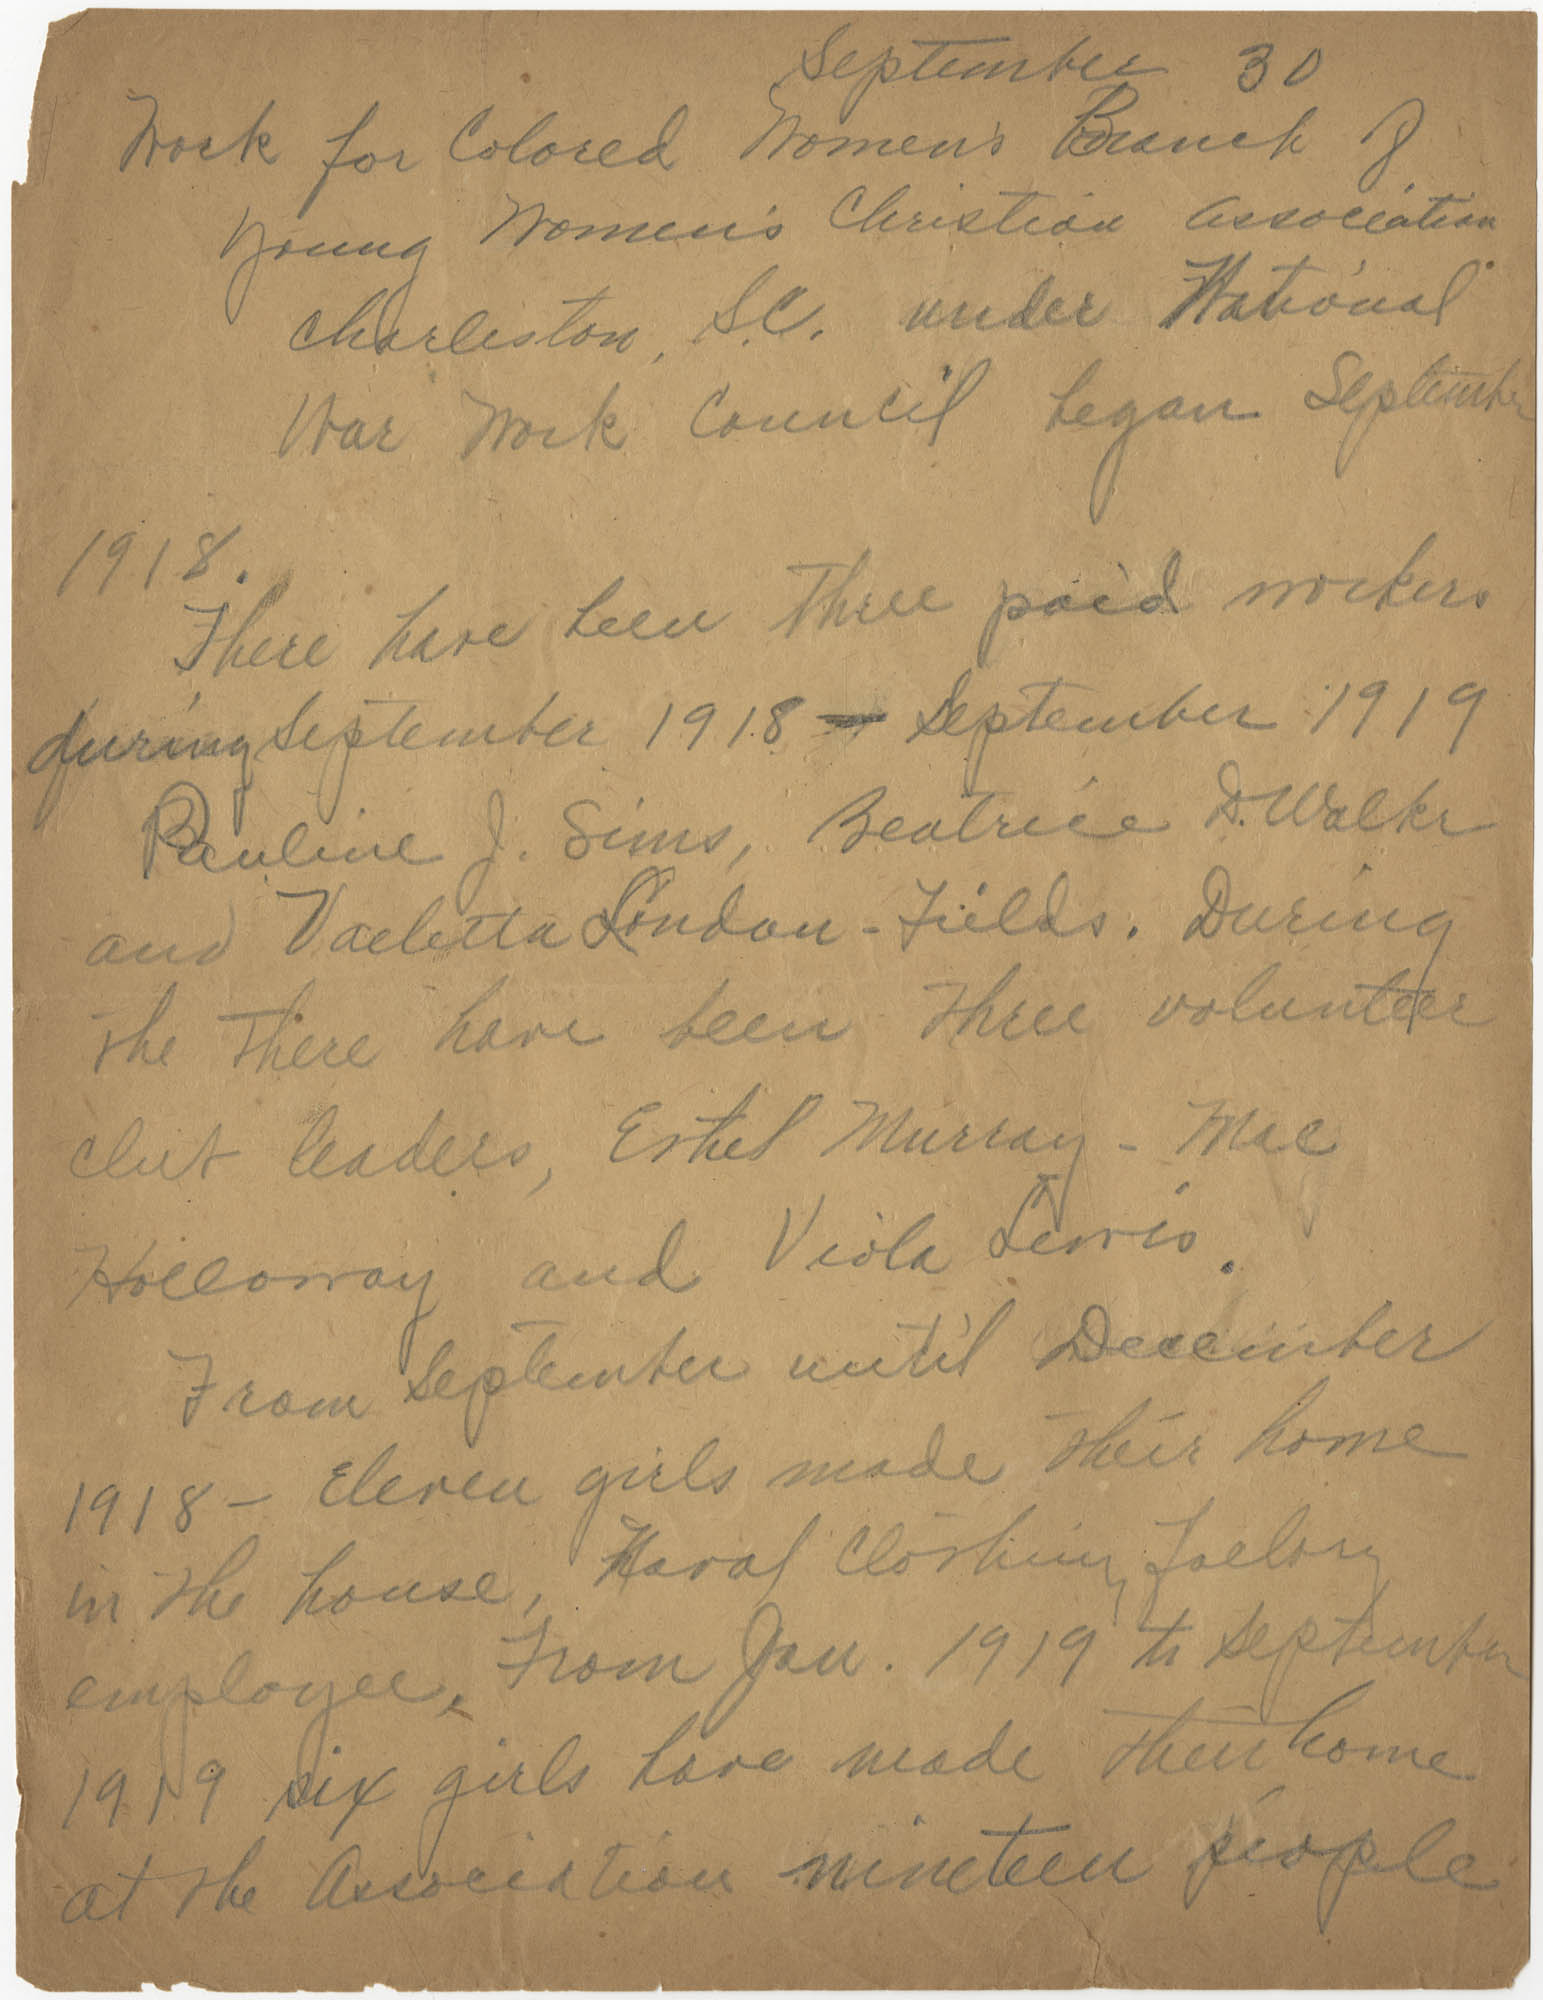 Minutes to the National War Work Council, Coming Street Y.W.C.A., September 30, 1918